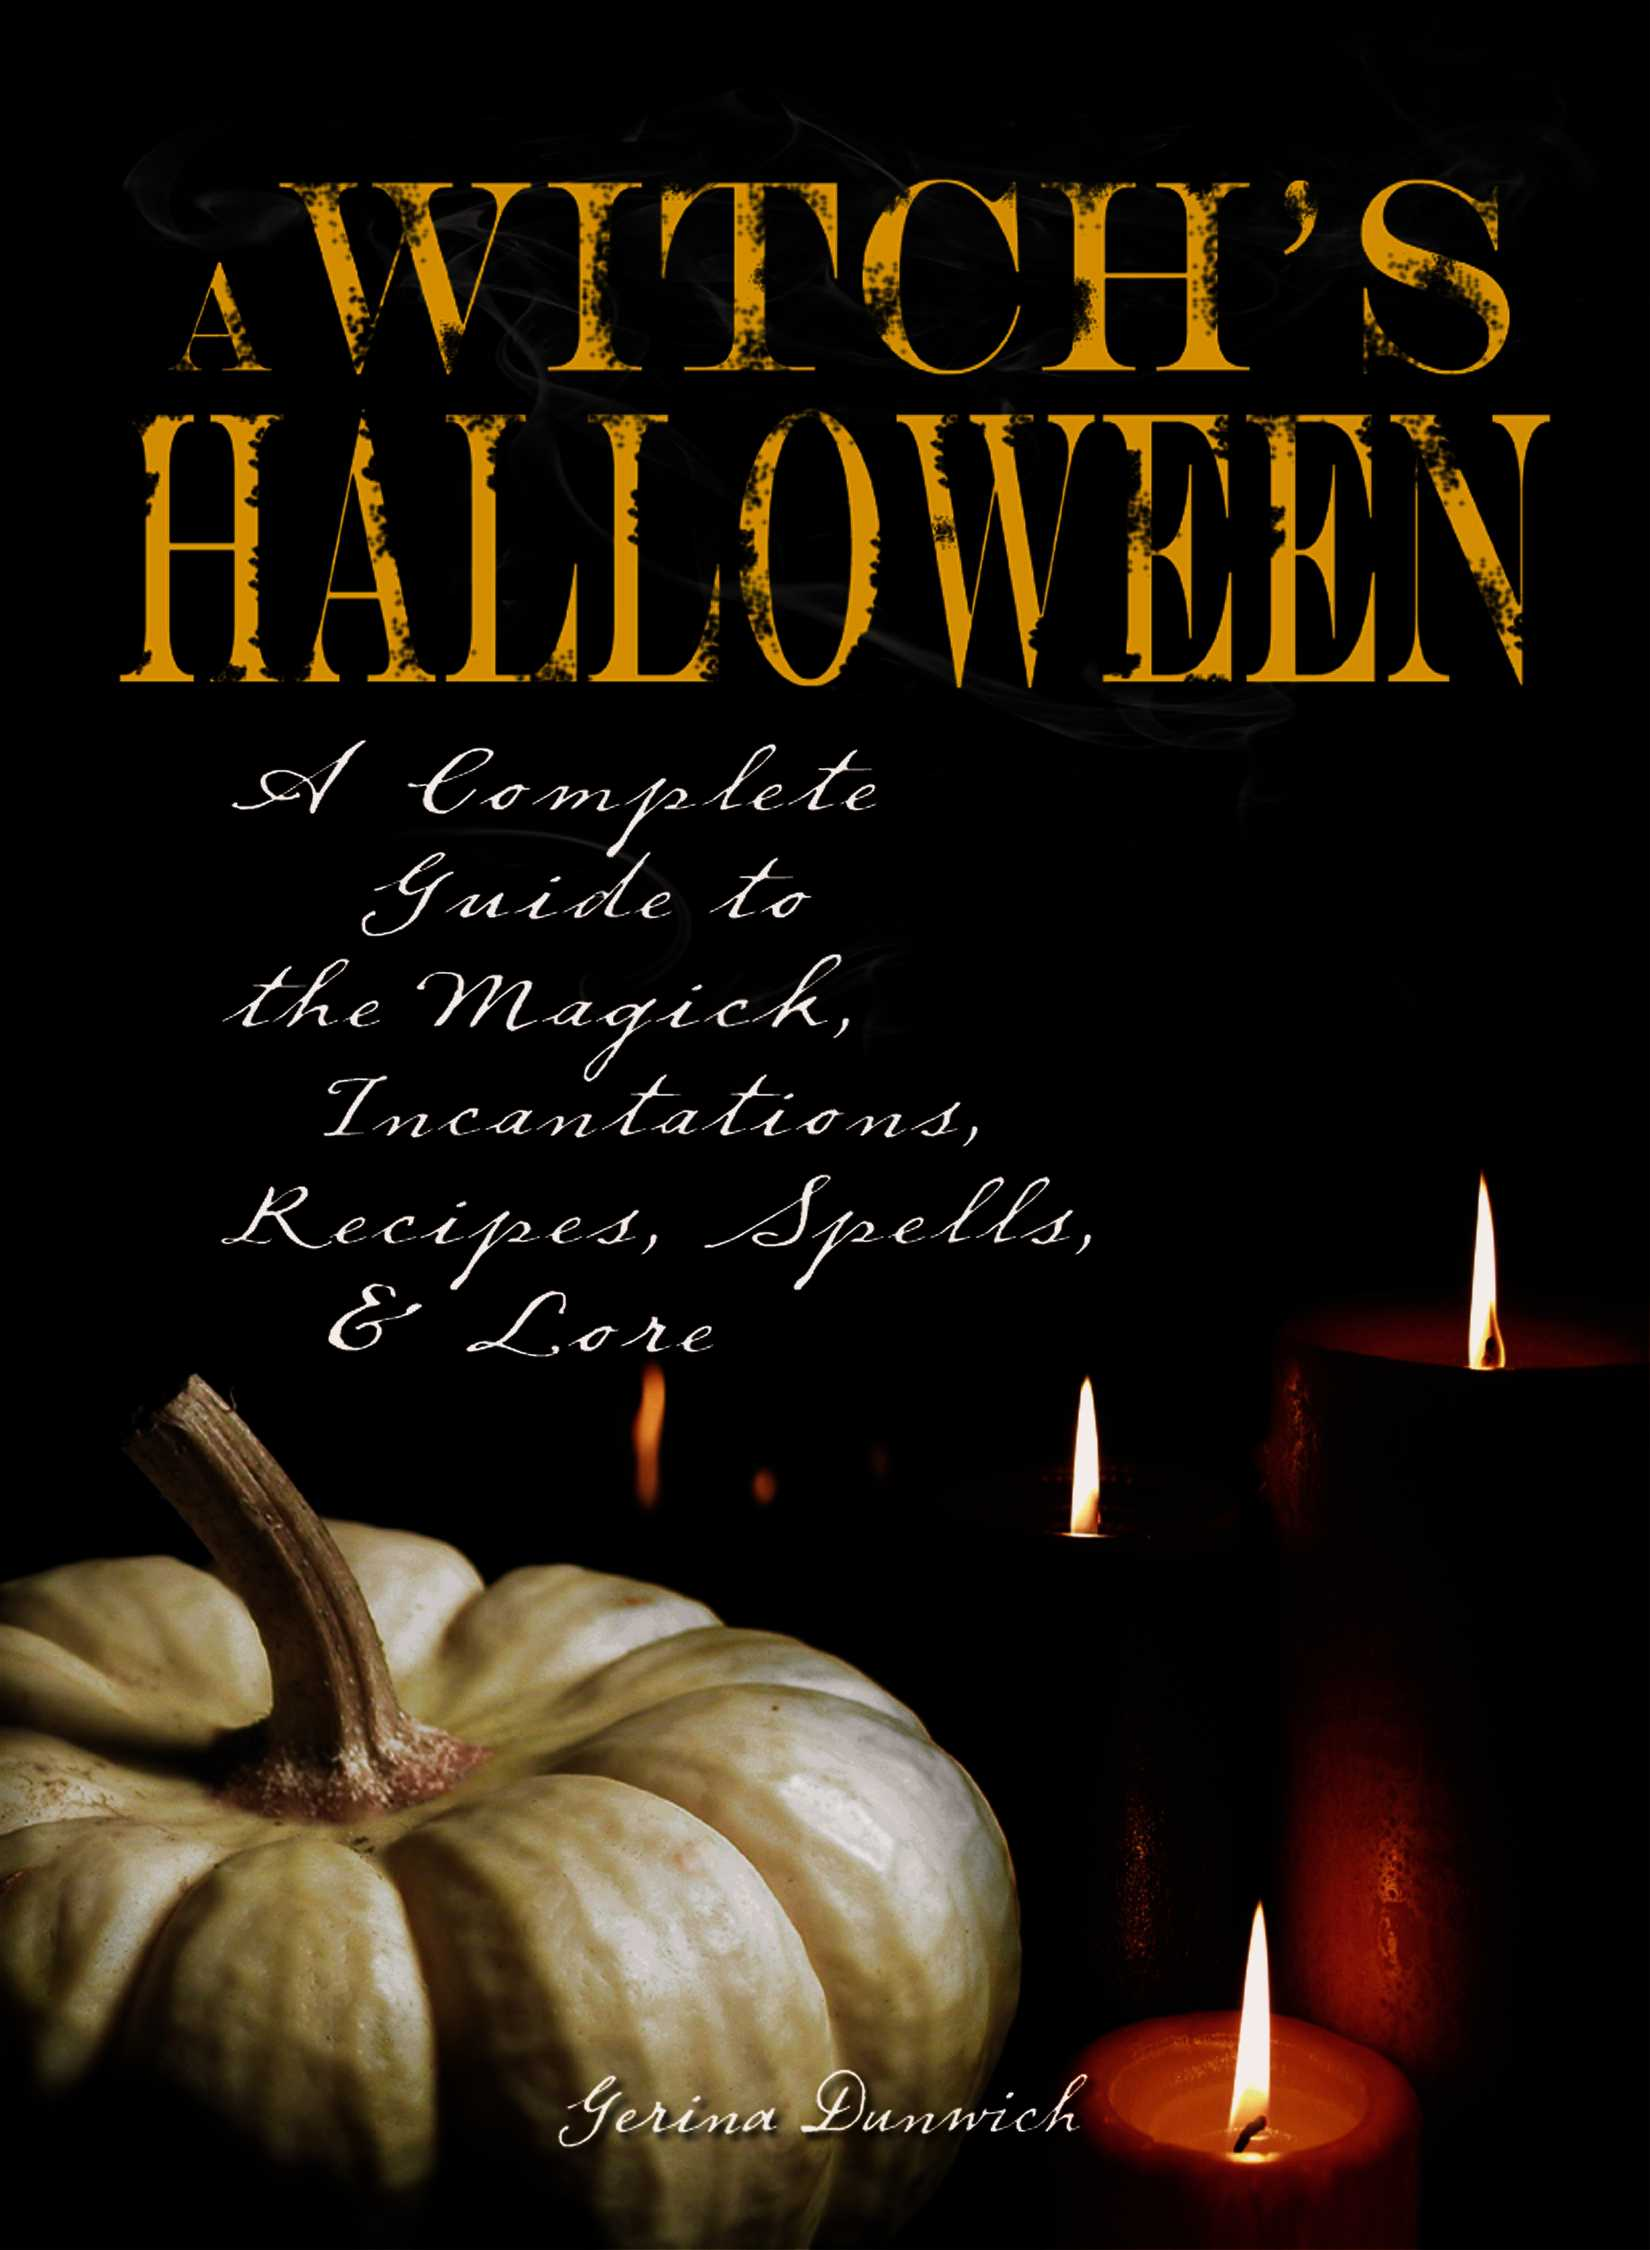 Witch's Halloween: A Complete Guide to the Magick, Incantations, Recipes, Spells, and Lore (Paperback)